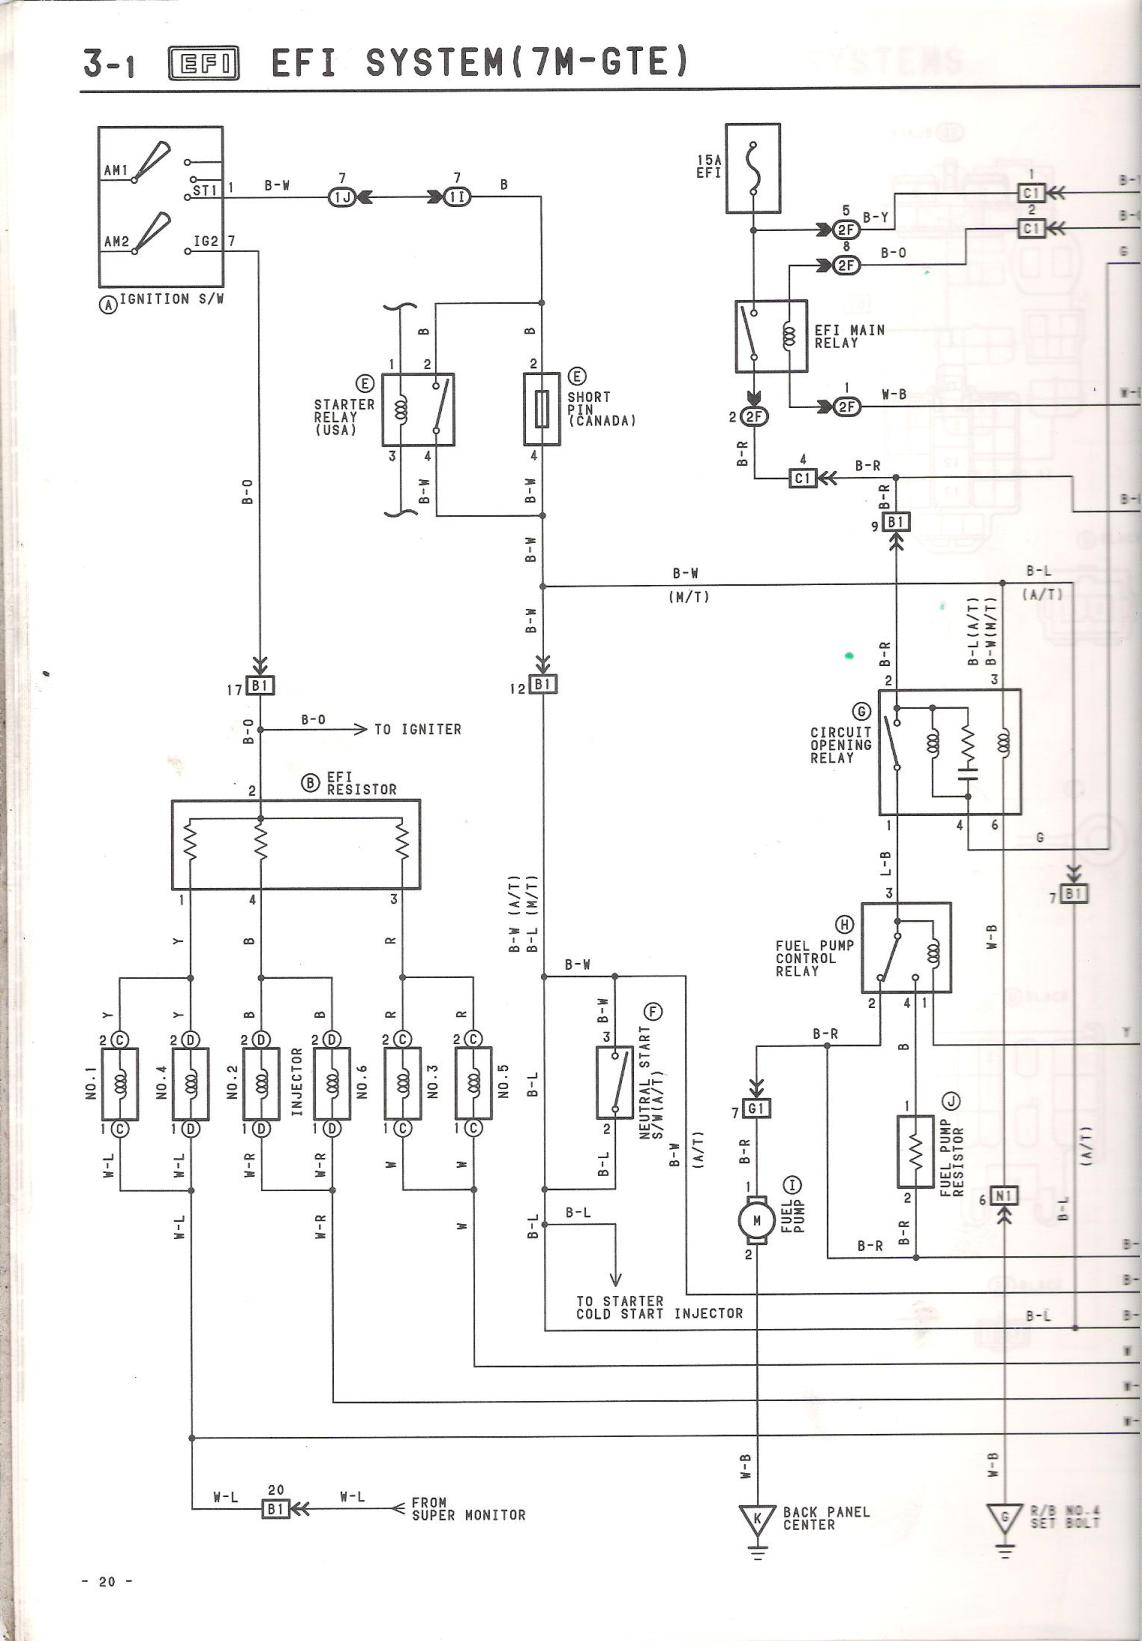 Engine Wiring Diagram for an 88 MKIII? Does this exist